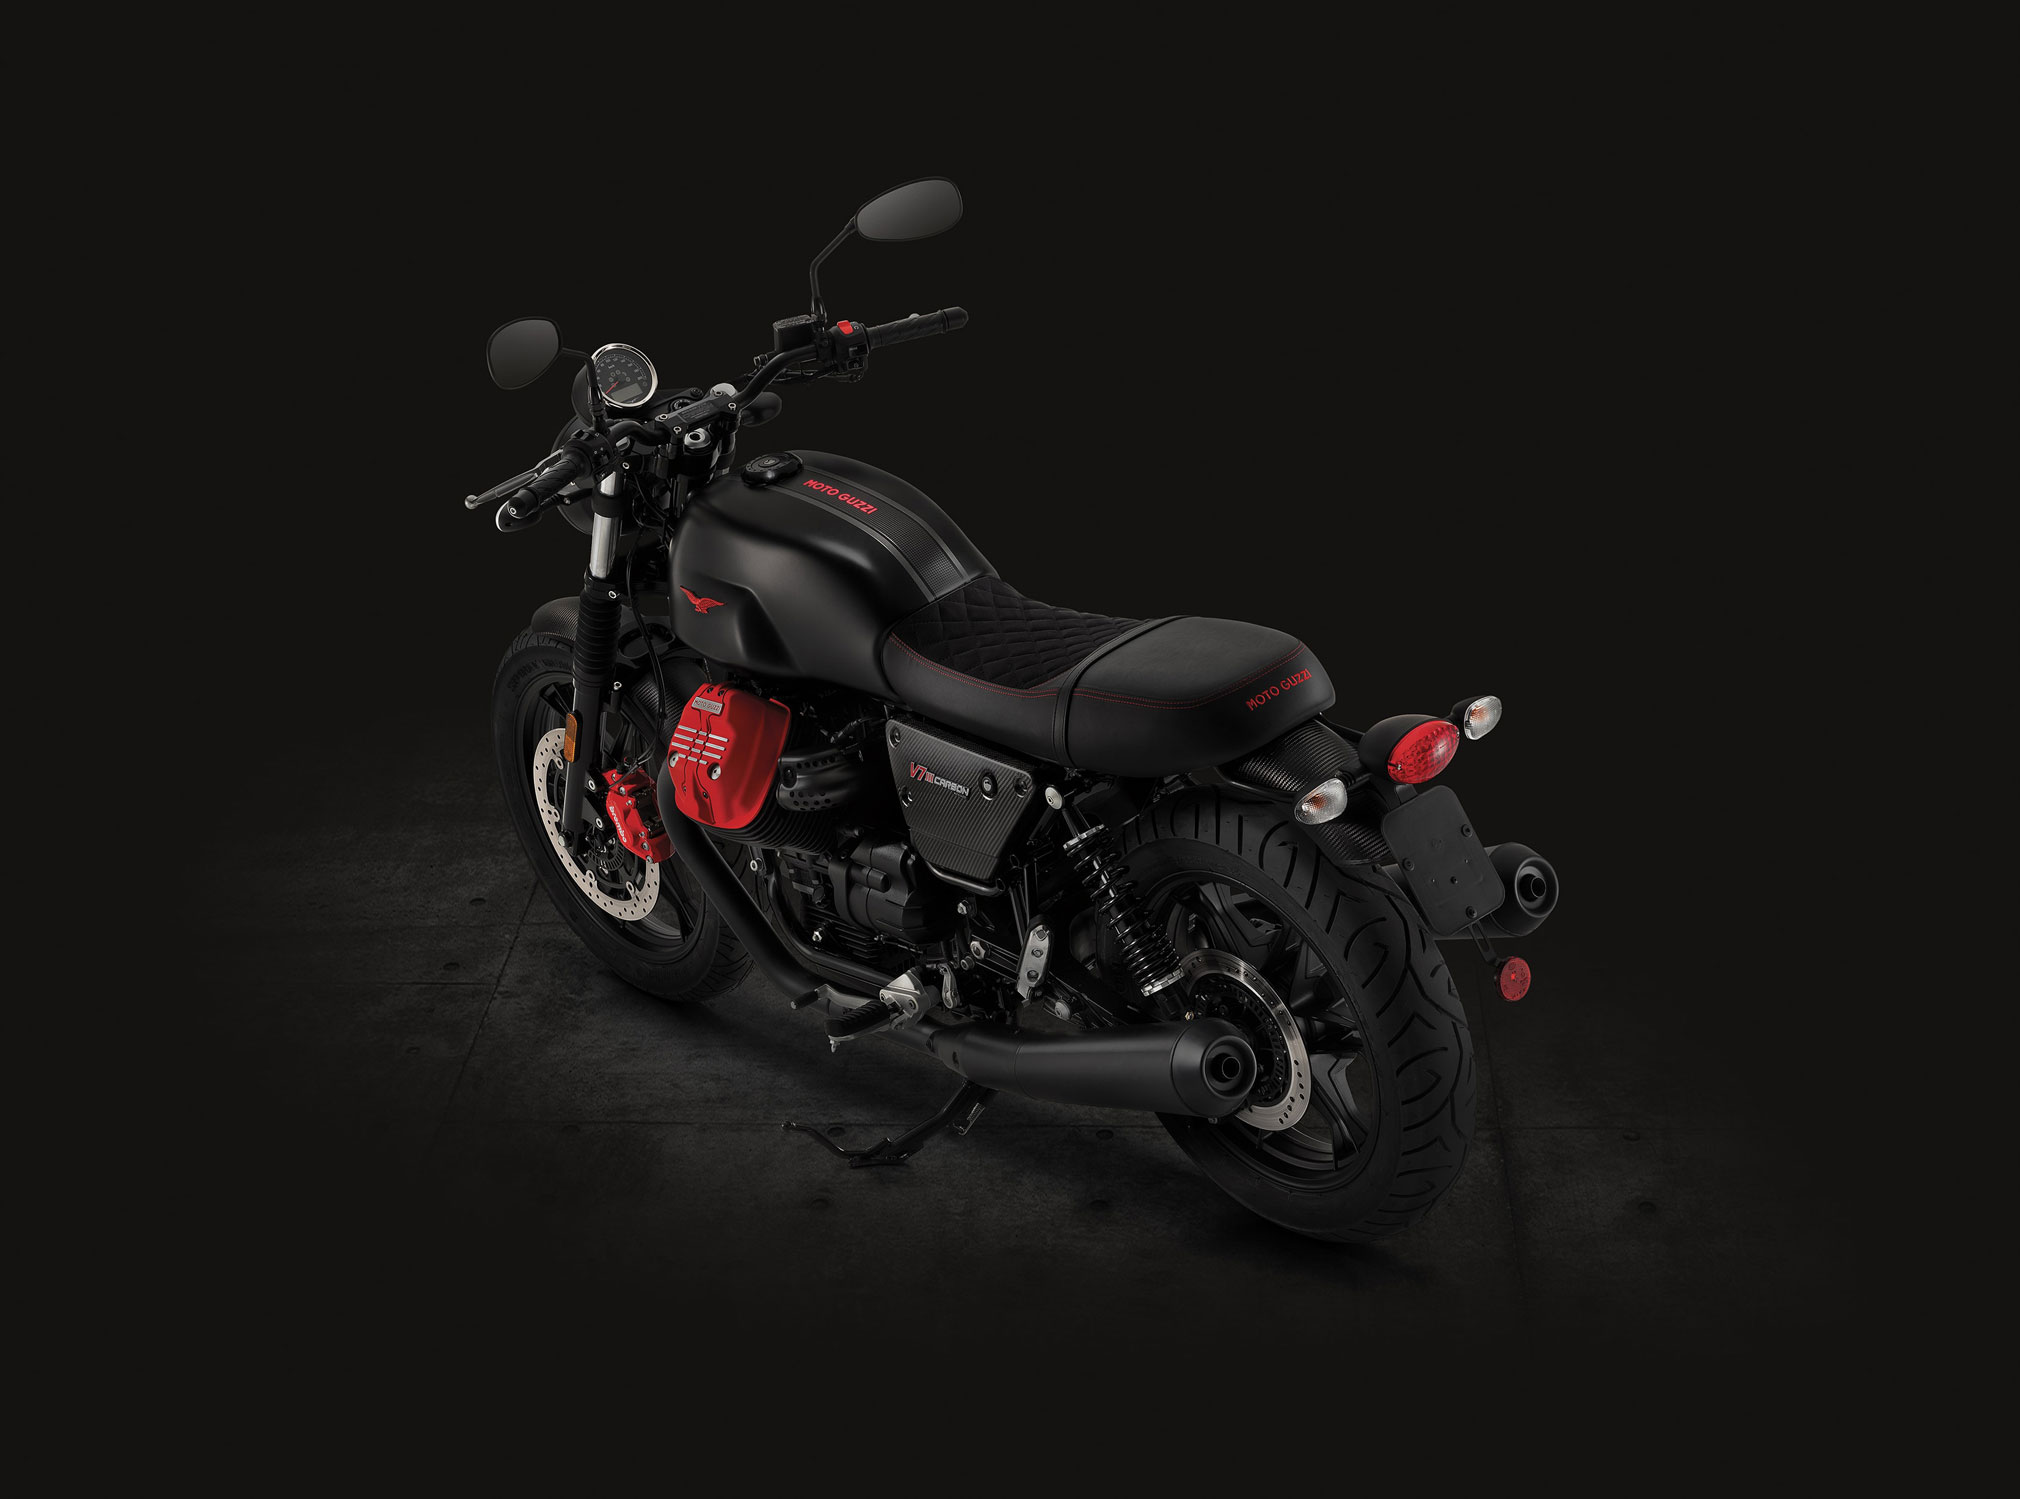 2020 Moto Guzzi V7 III Carbon Guide • Total Motorcycle